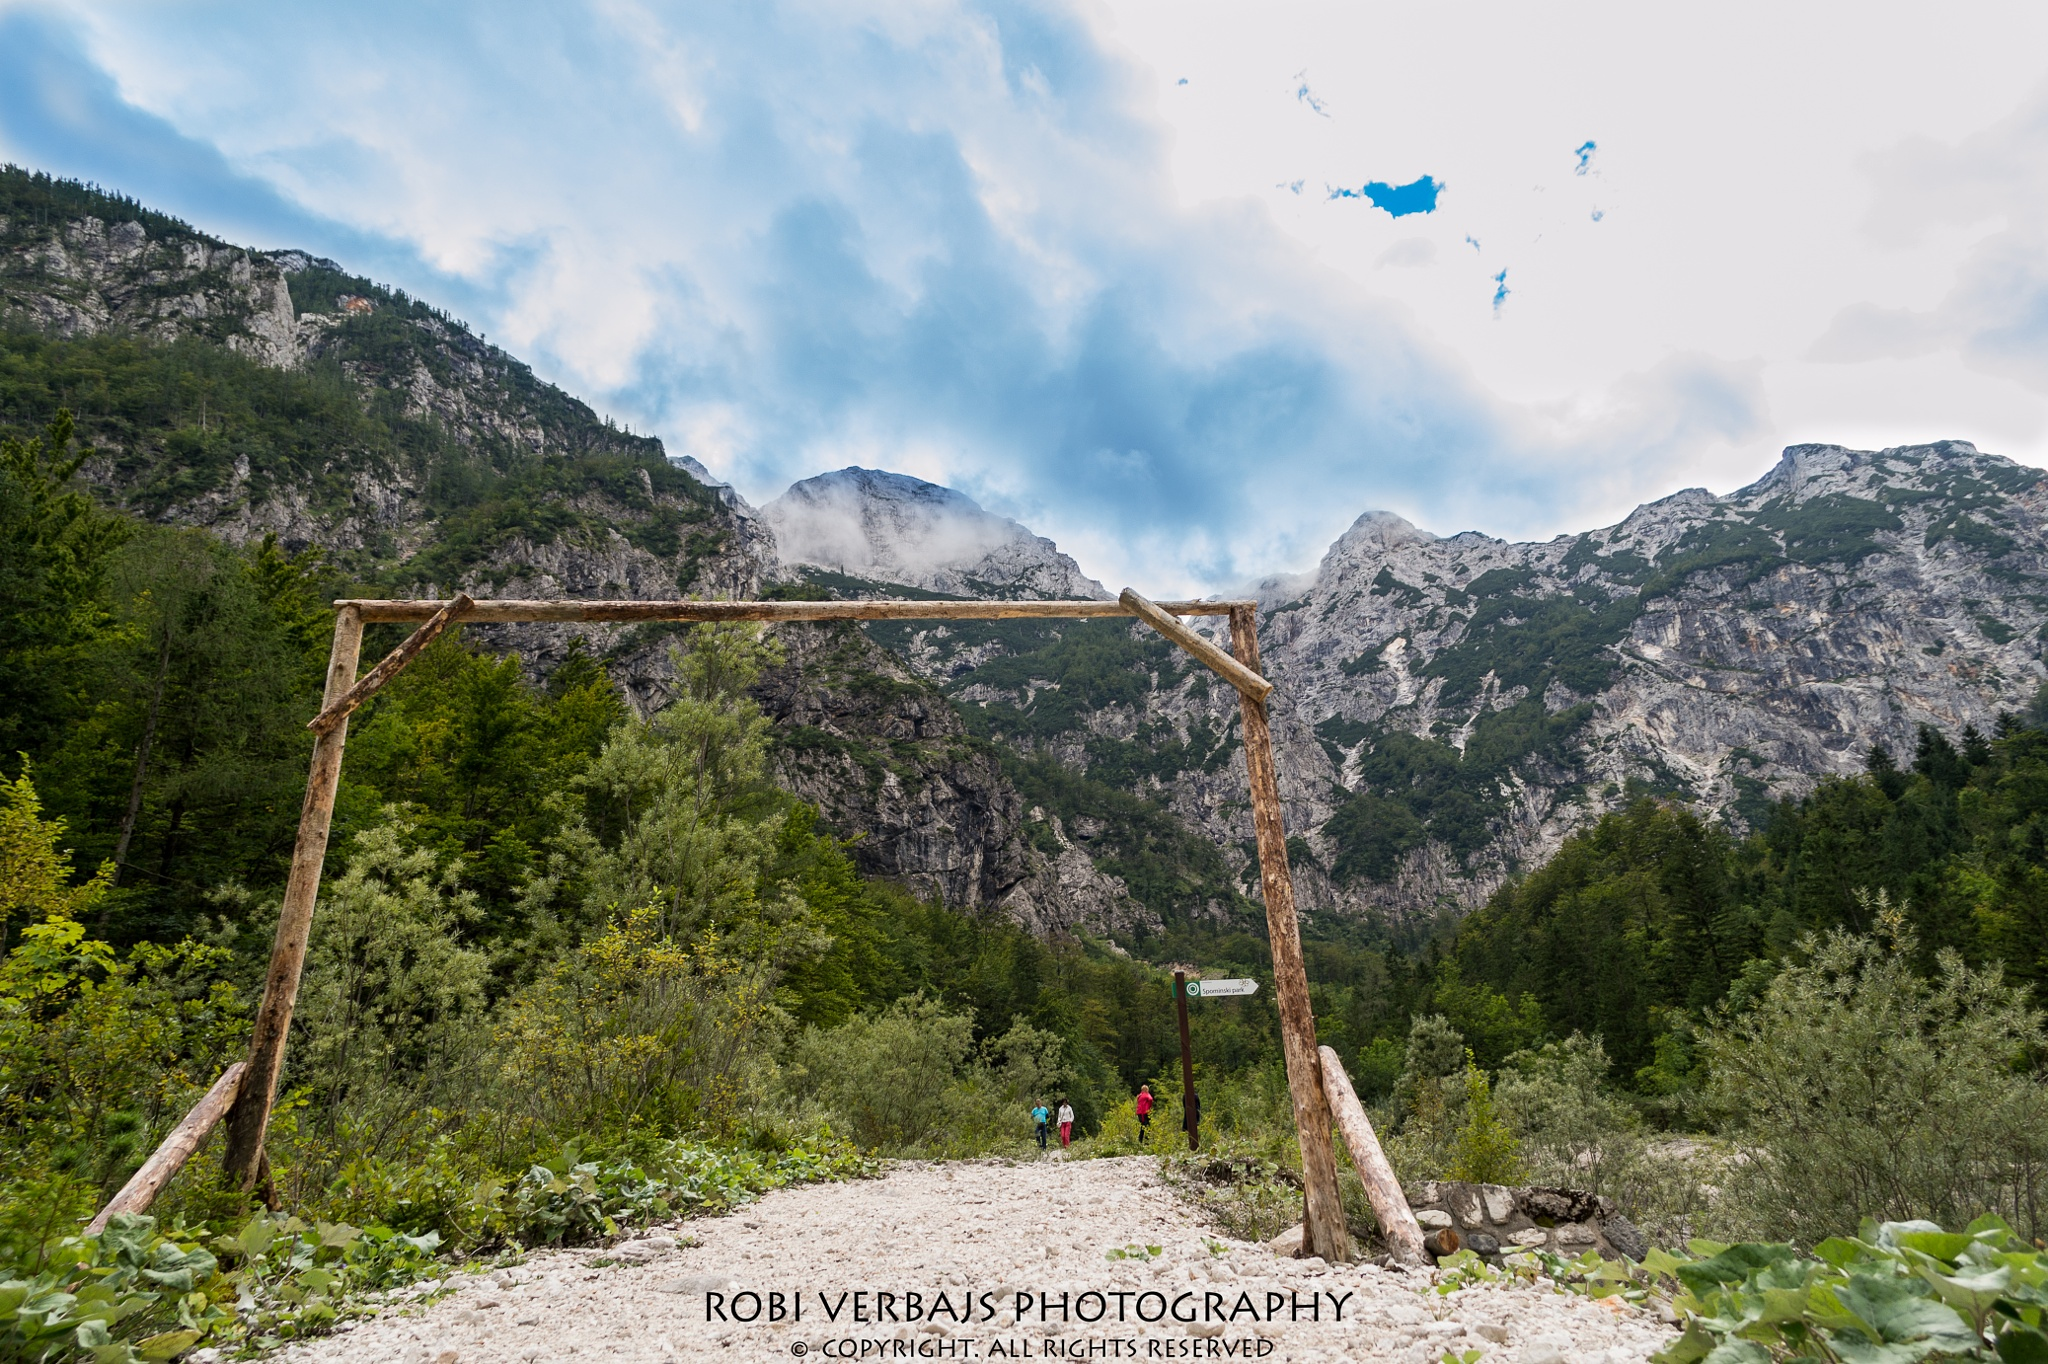 Input in mountains / Vhod v gore by Robi Verbajs Photography